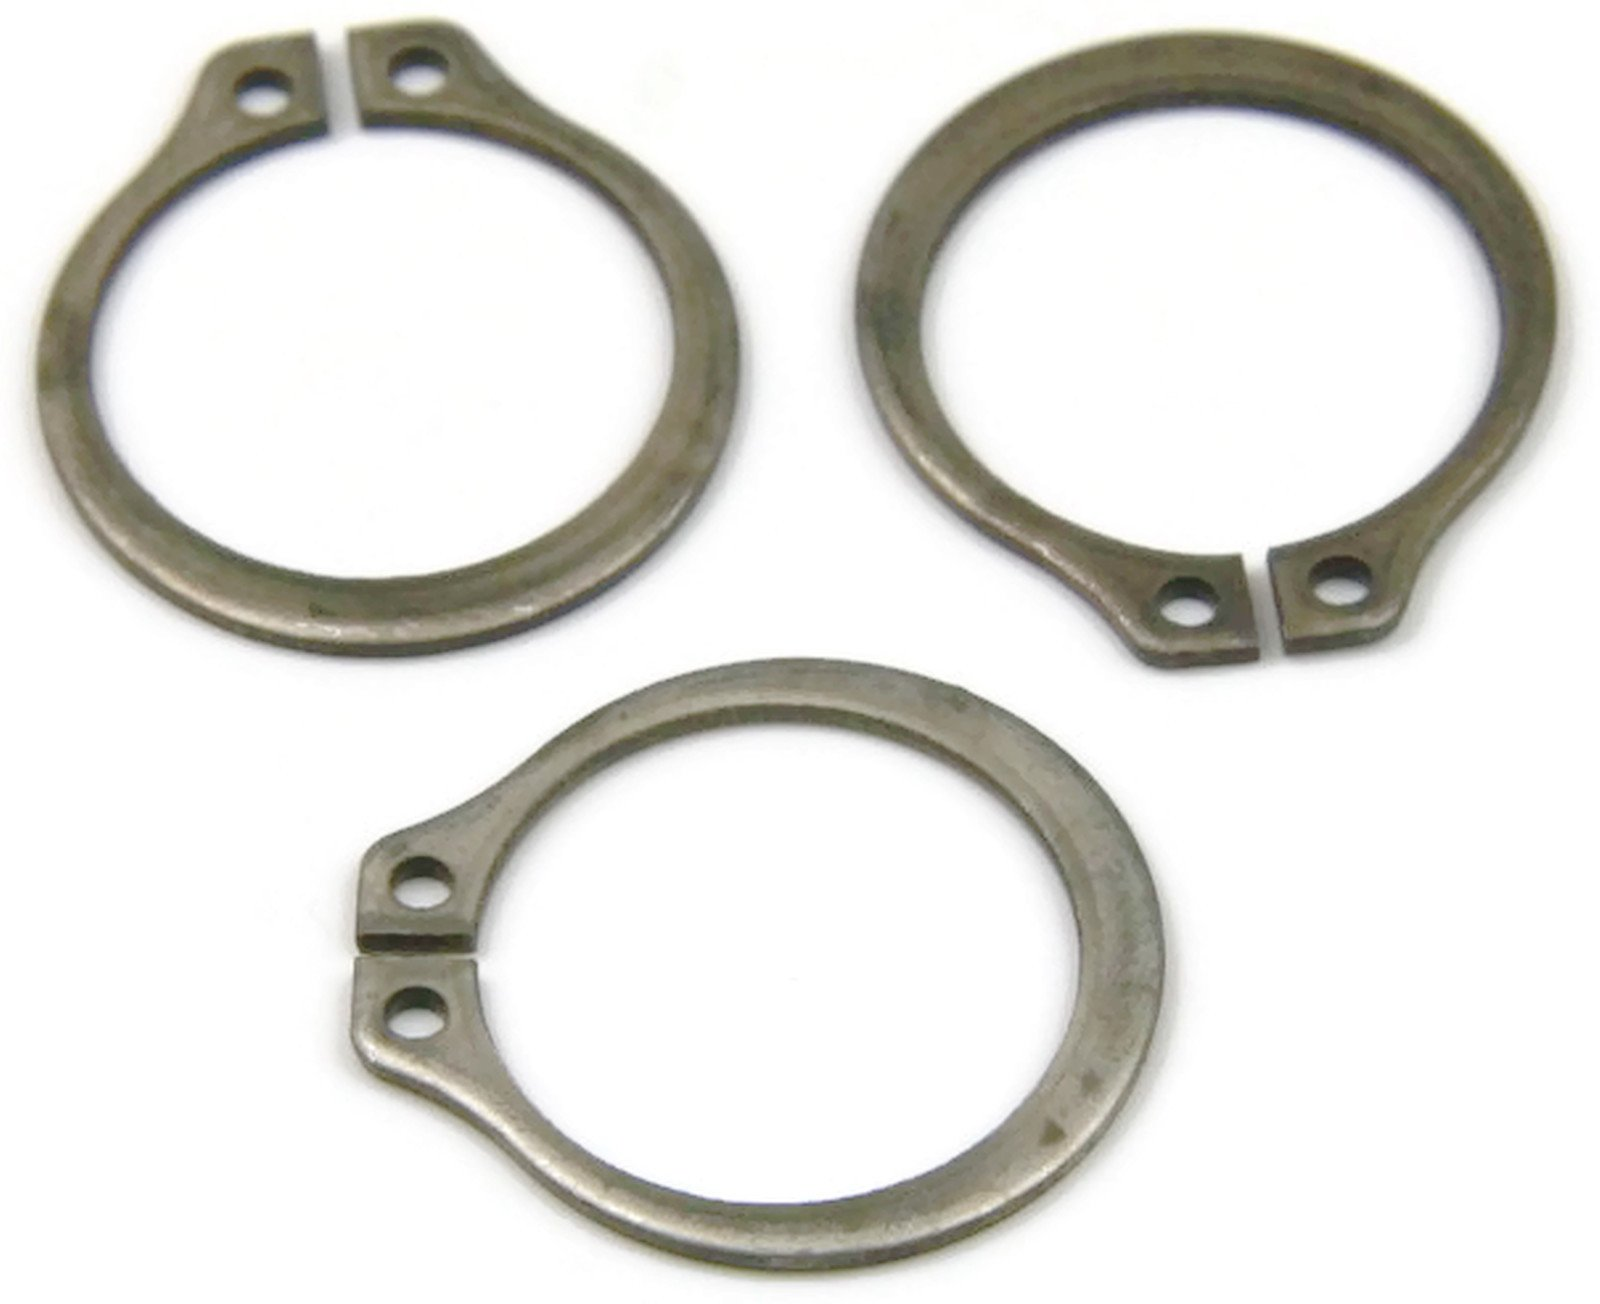 Rotor Clip SH-31 SS Stainless Steel External Shaft Retaining Ring 5/16 QTY 100 by RAW PRODUCTS CORP